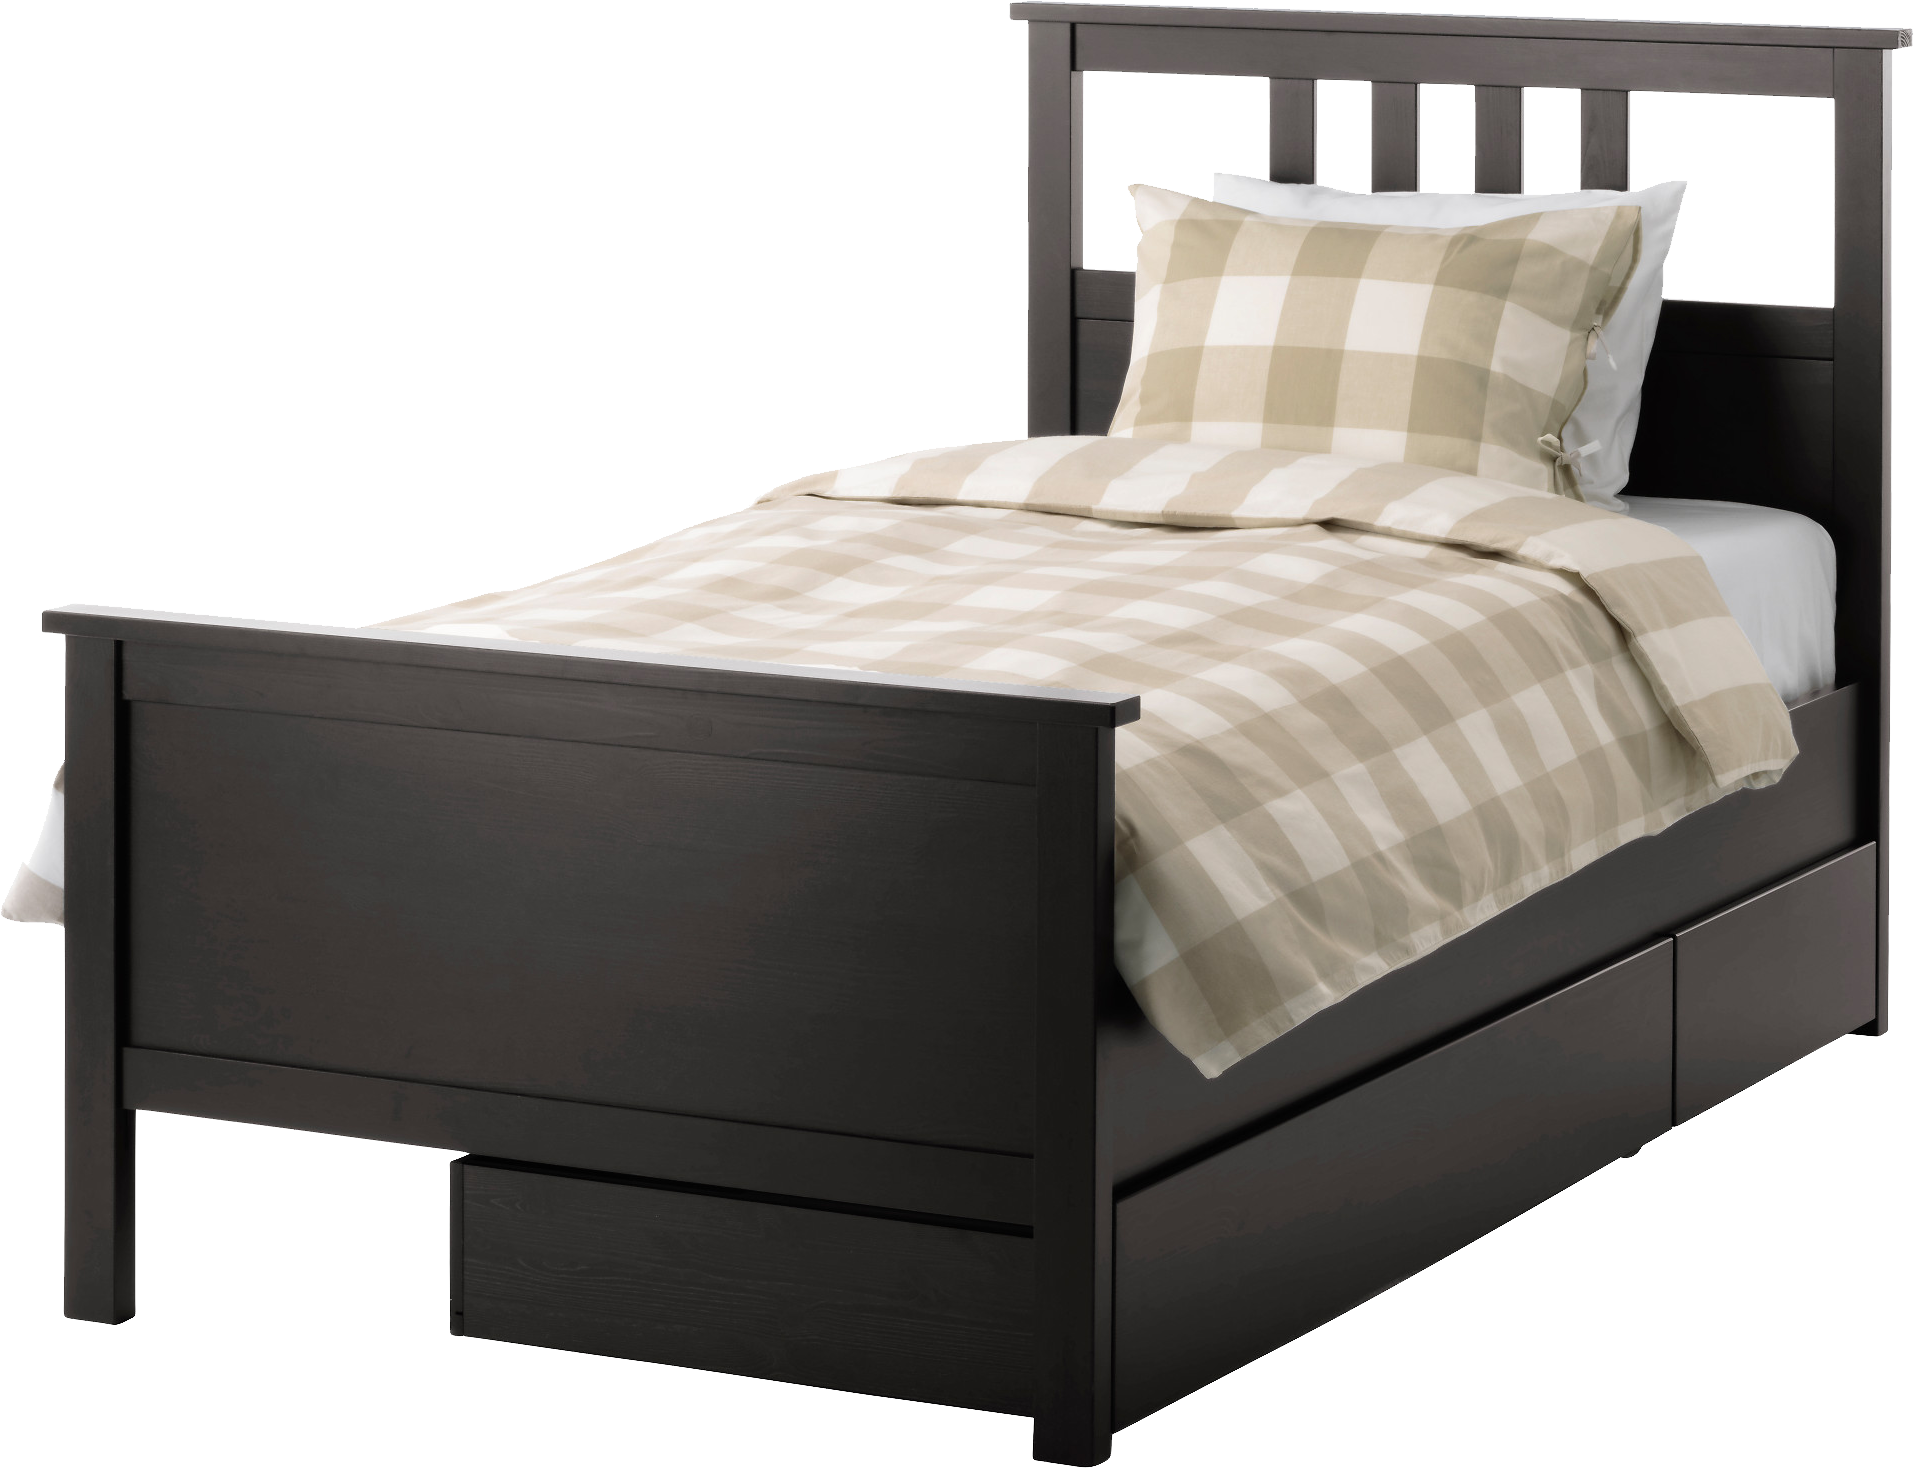 Bed Png Image Single Bed Frame Twin Size Bed Frame Bed Frame With Storage